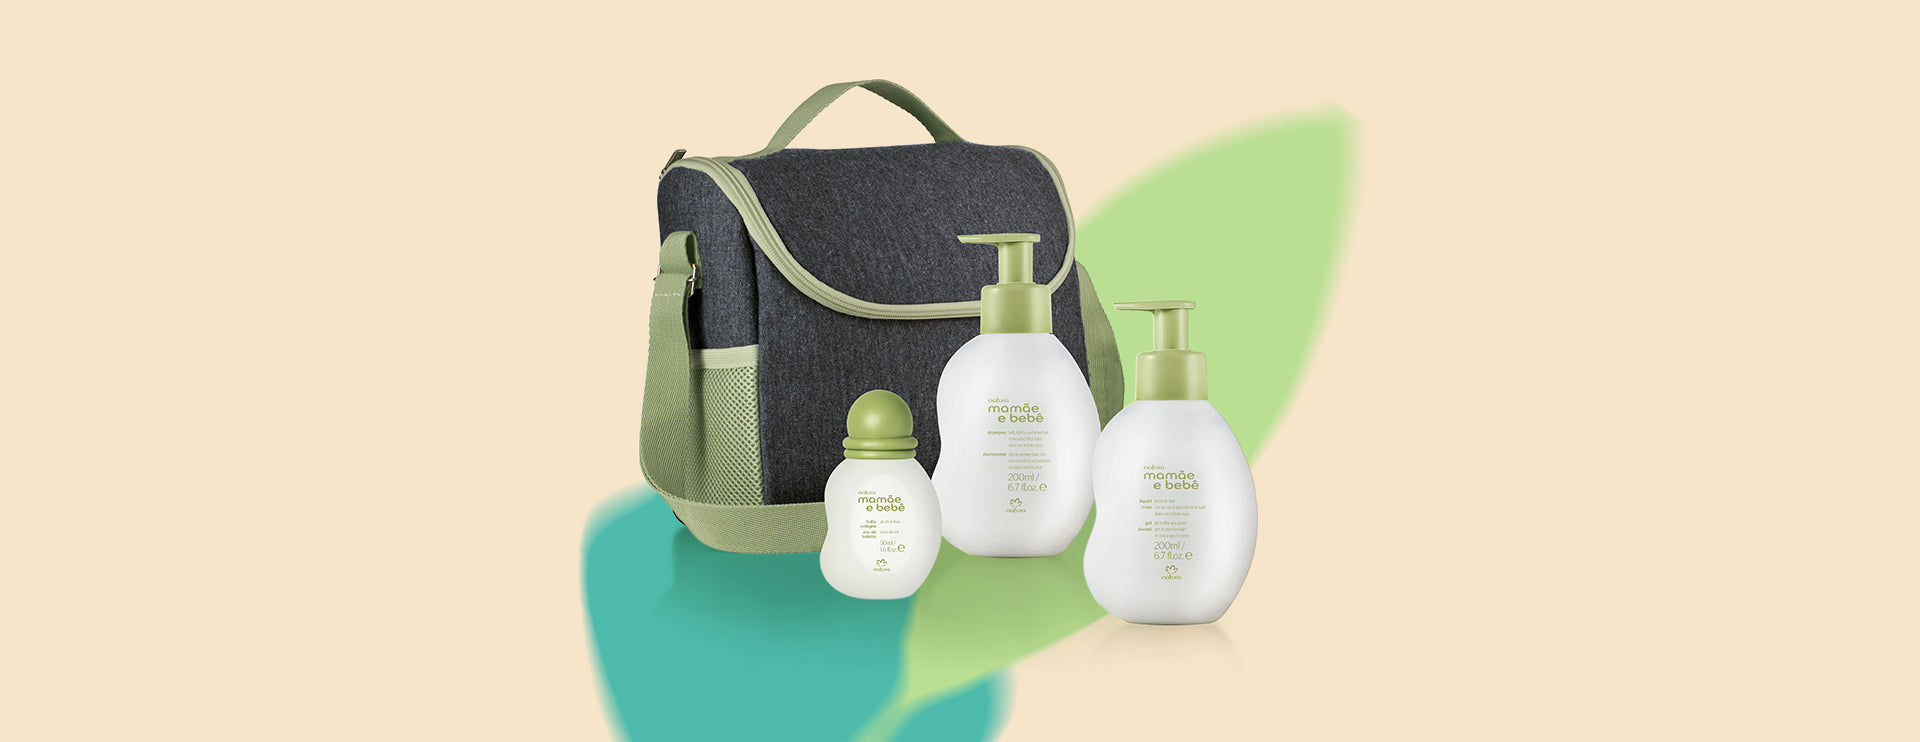 natura mamae e bebe thermal baby bag